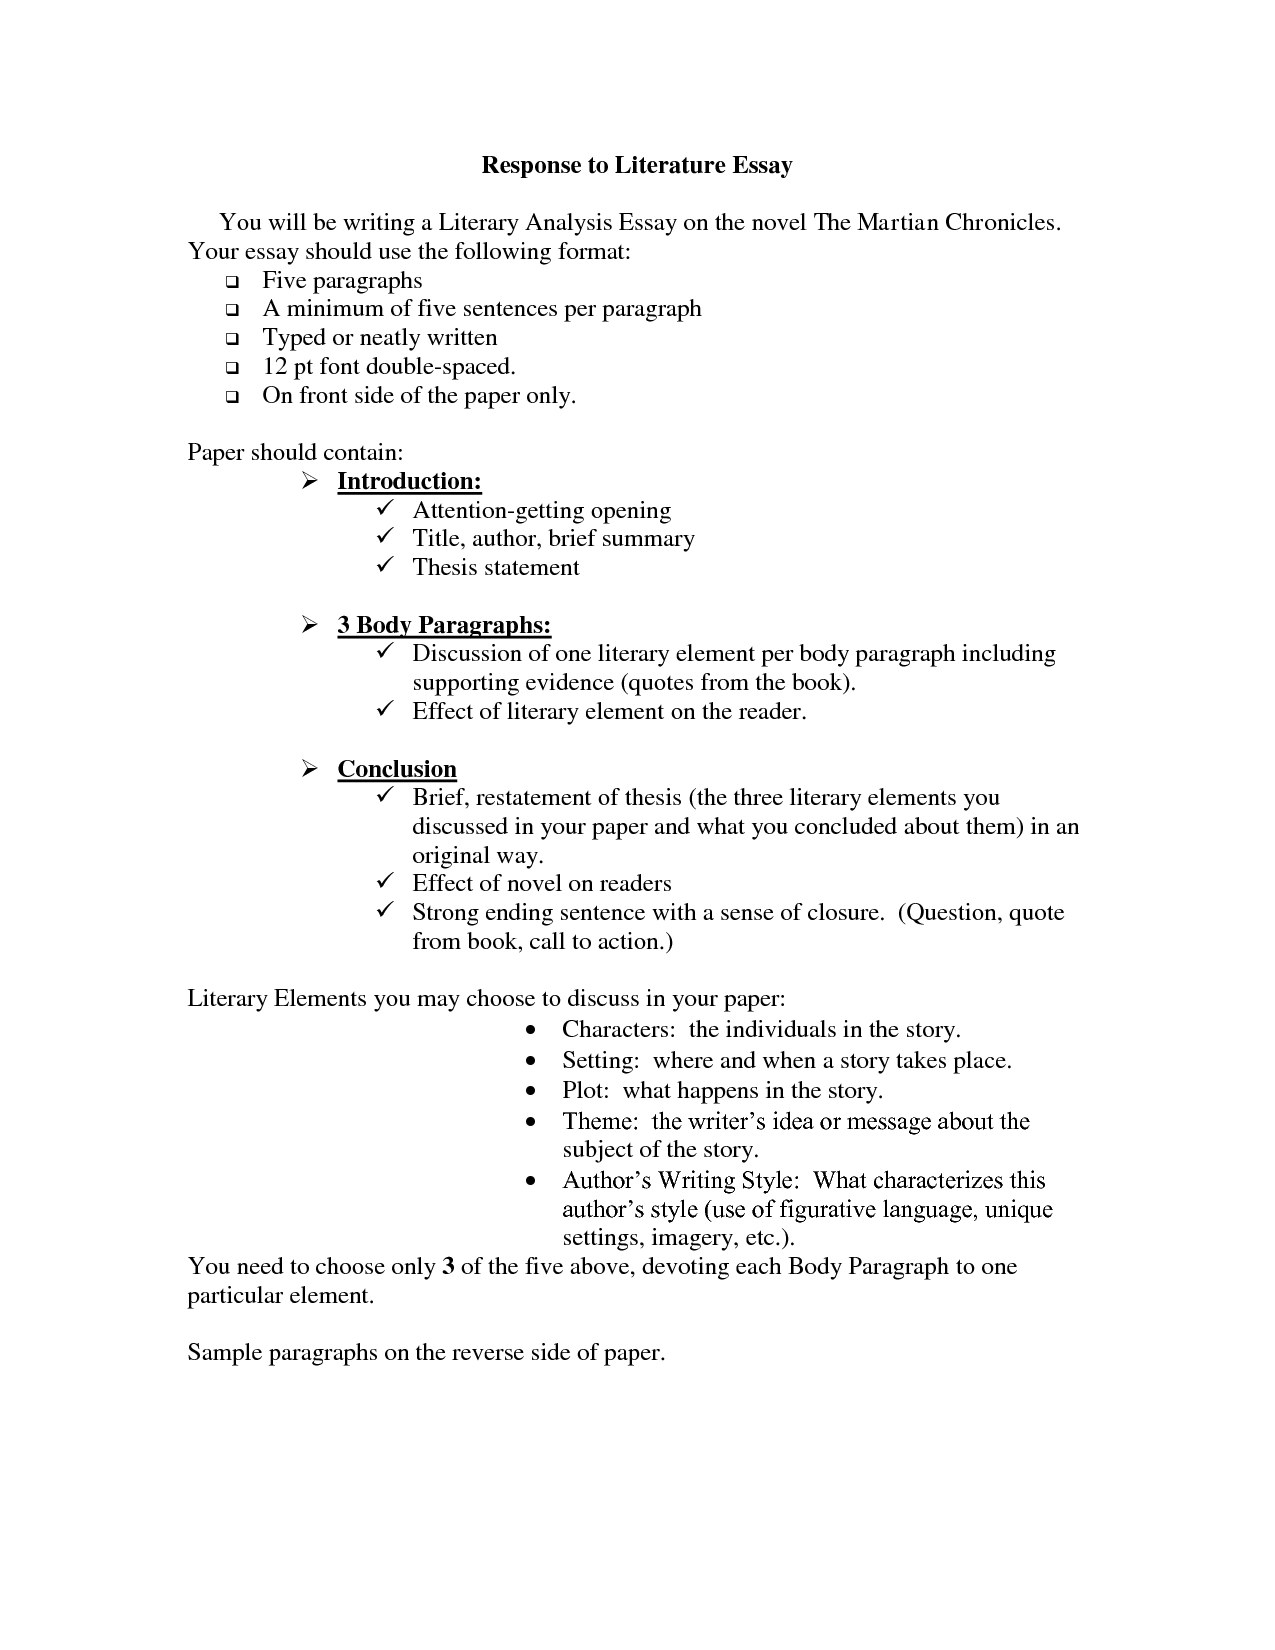 Thesis Statement In An Essay  High School Persuasive Essay also English Essay Story  Write Critical Analysis Essay Response To  Compare And Contrast Essay Examples High School